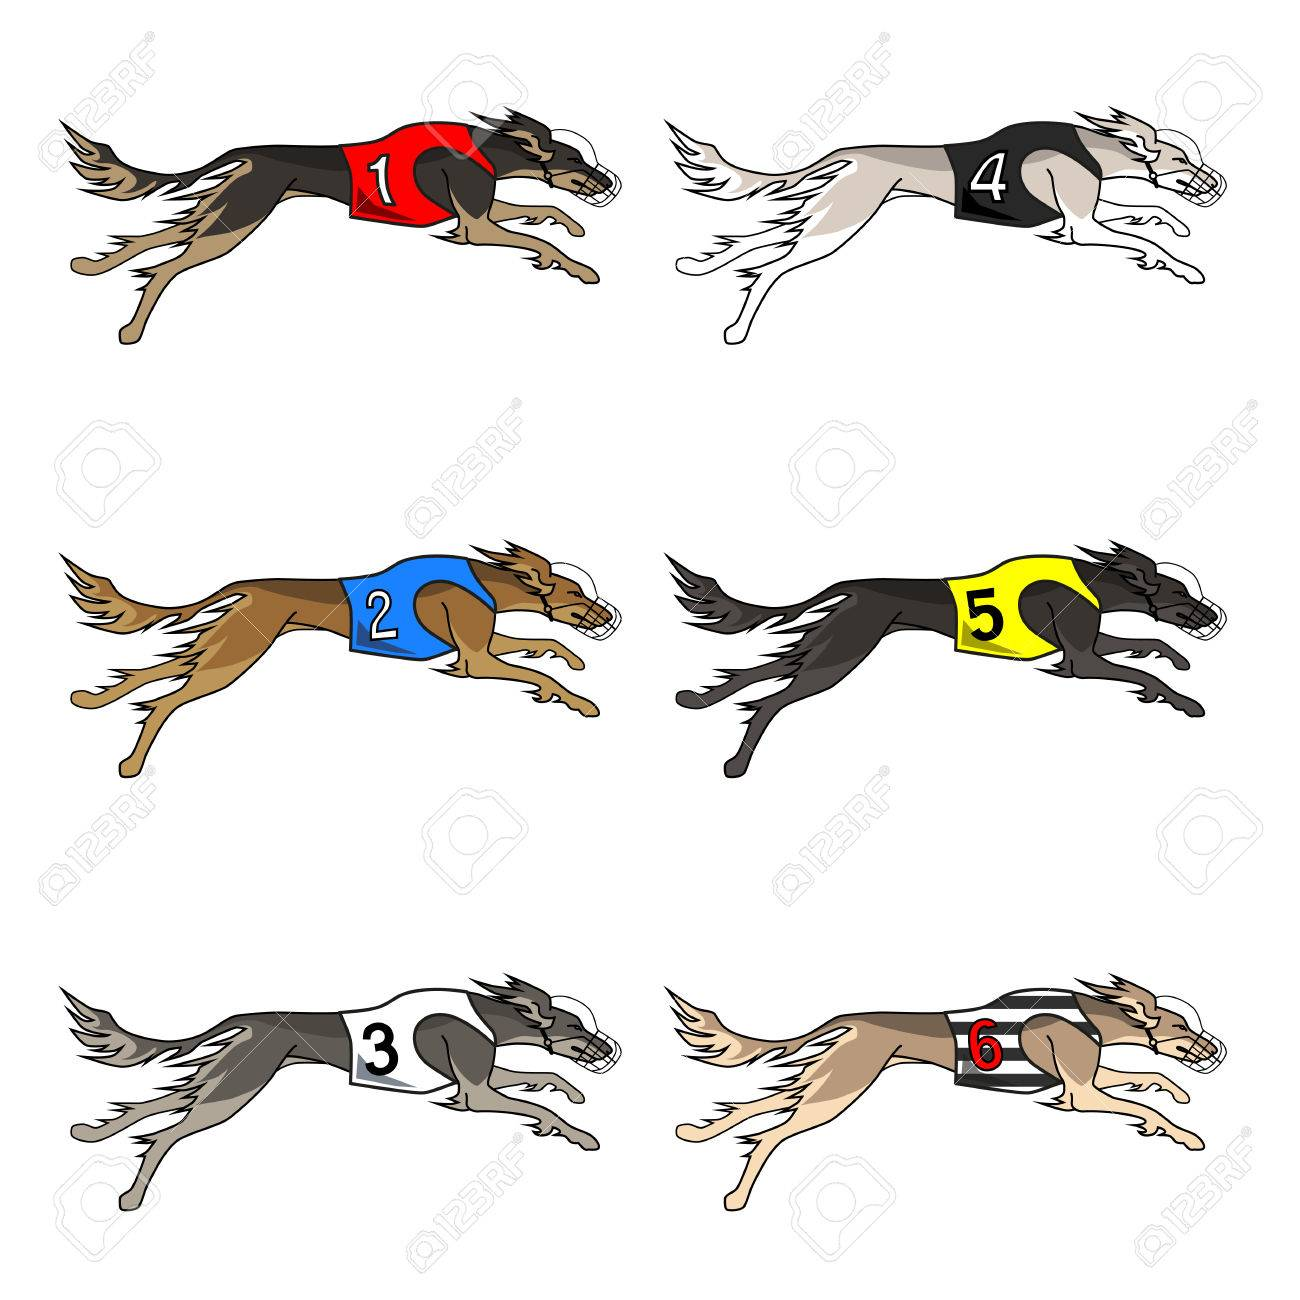 1300x1300 Vector Set Of Running Dog Saluki Breed, In Dog Racing Or Coursing